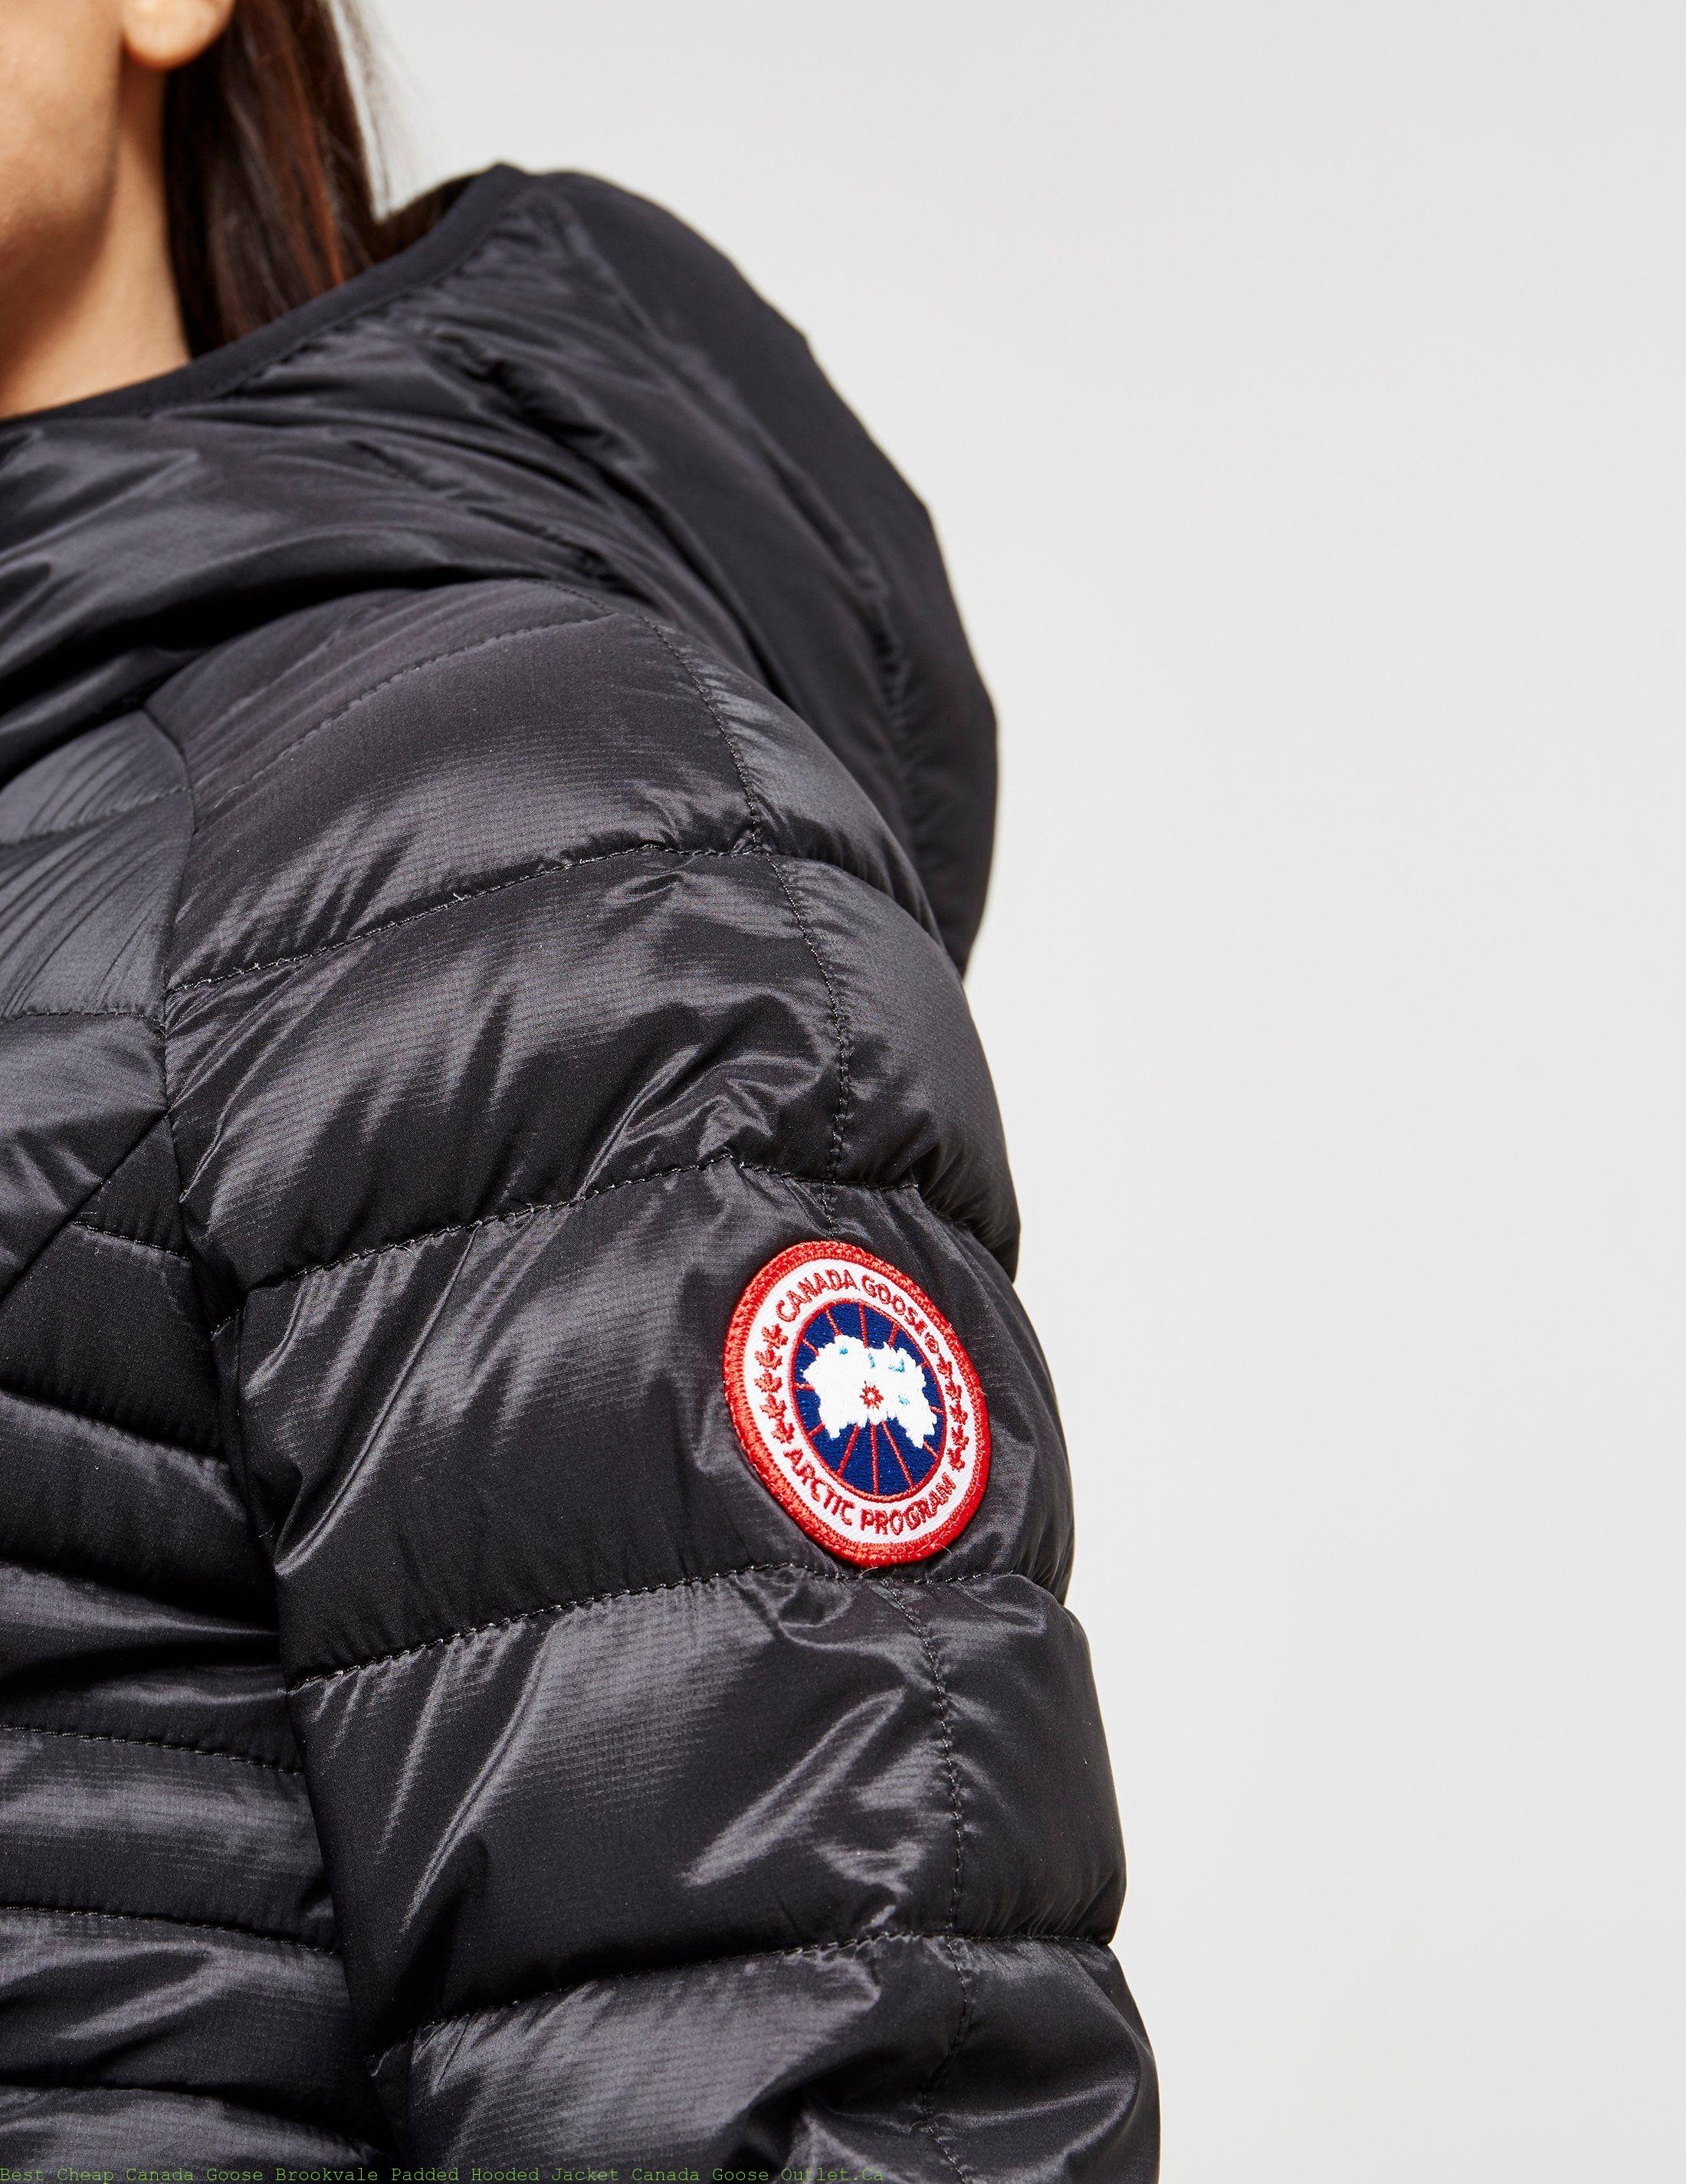 5277a7e97 Best Cheap Canada Goose Brookvale Padded Hooded Jacket Canada Goose  Outlet.Ca